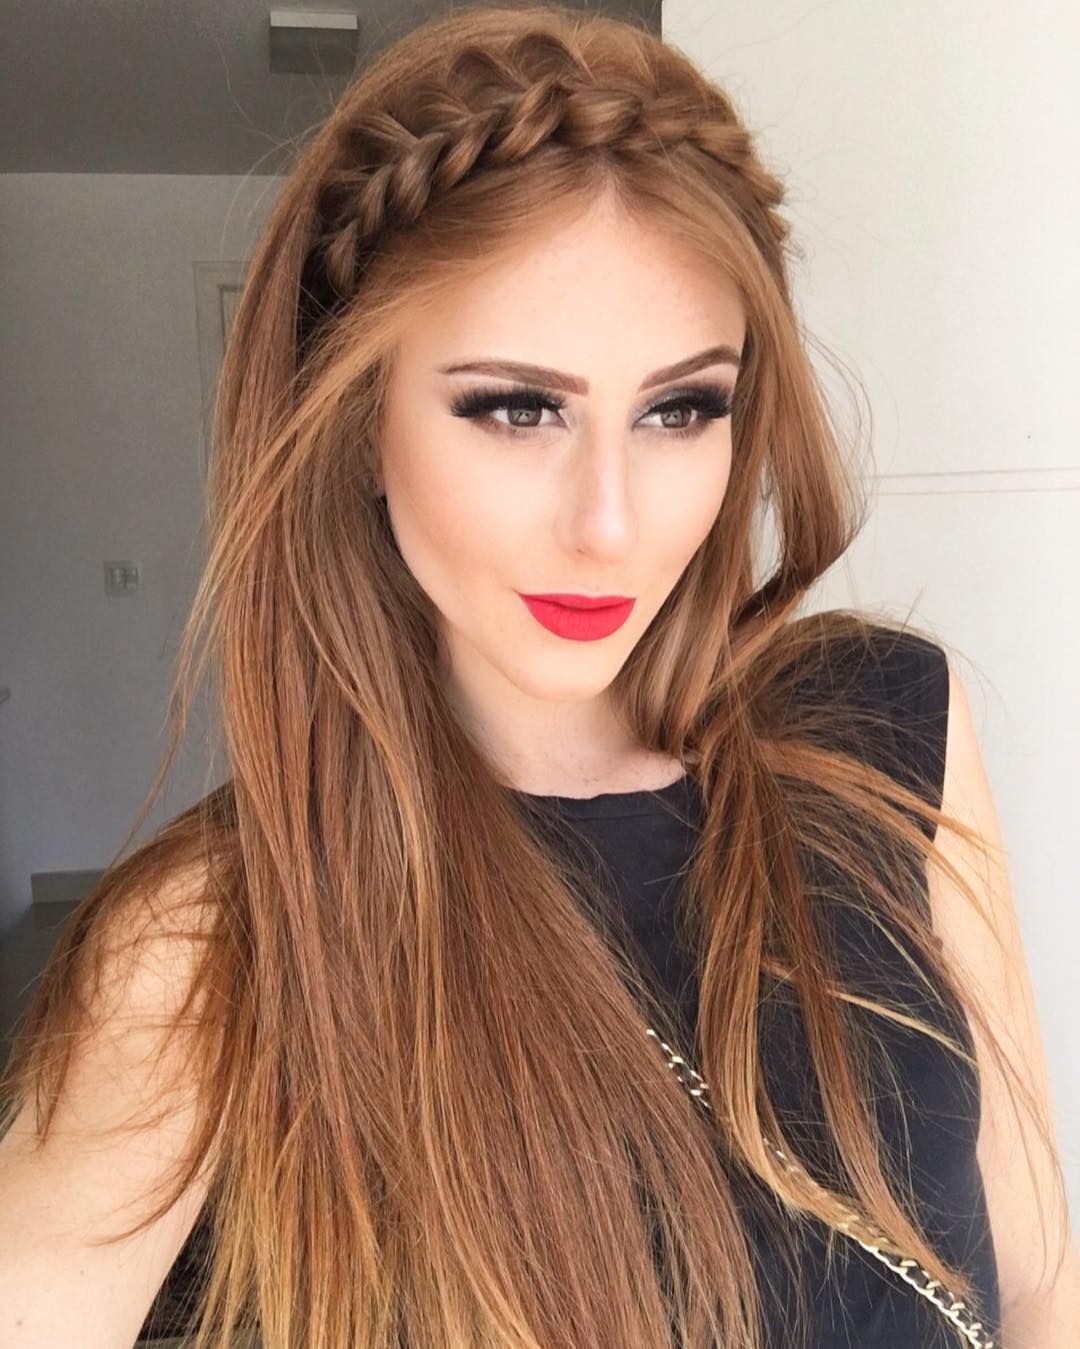 Pin by sms on Hair  Pinterest  Hair styles Hair and Braids